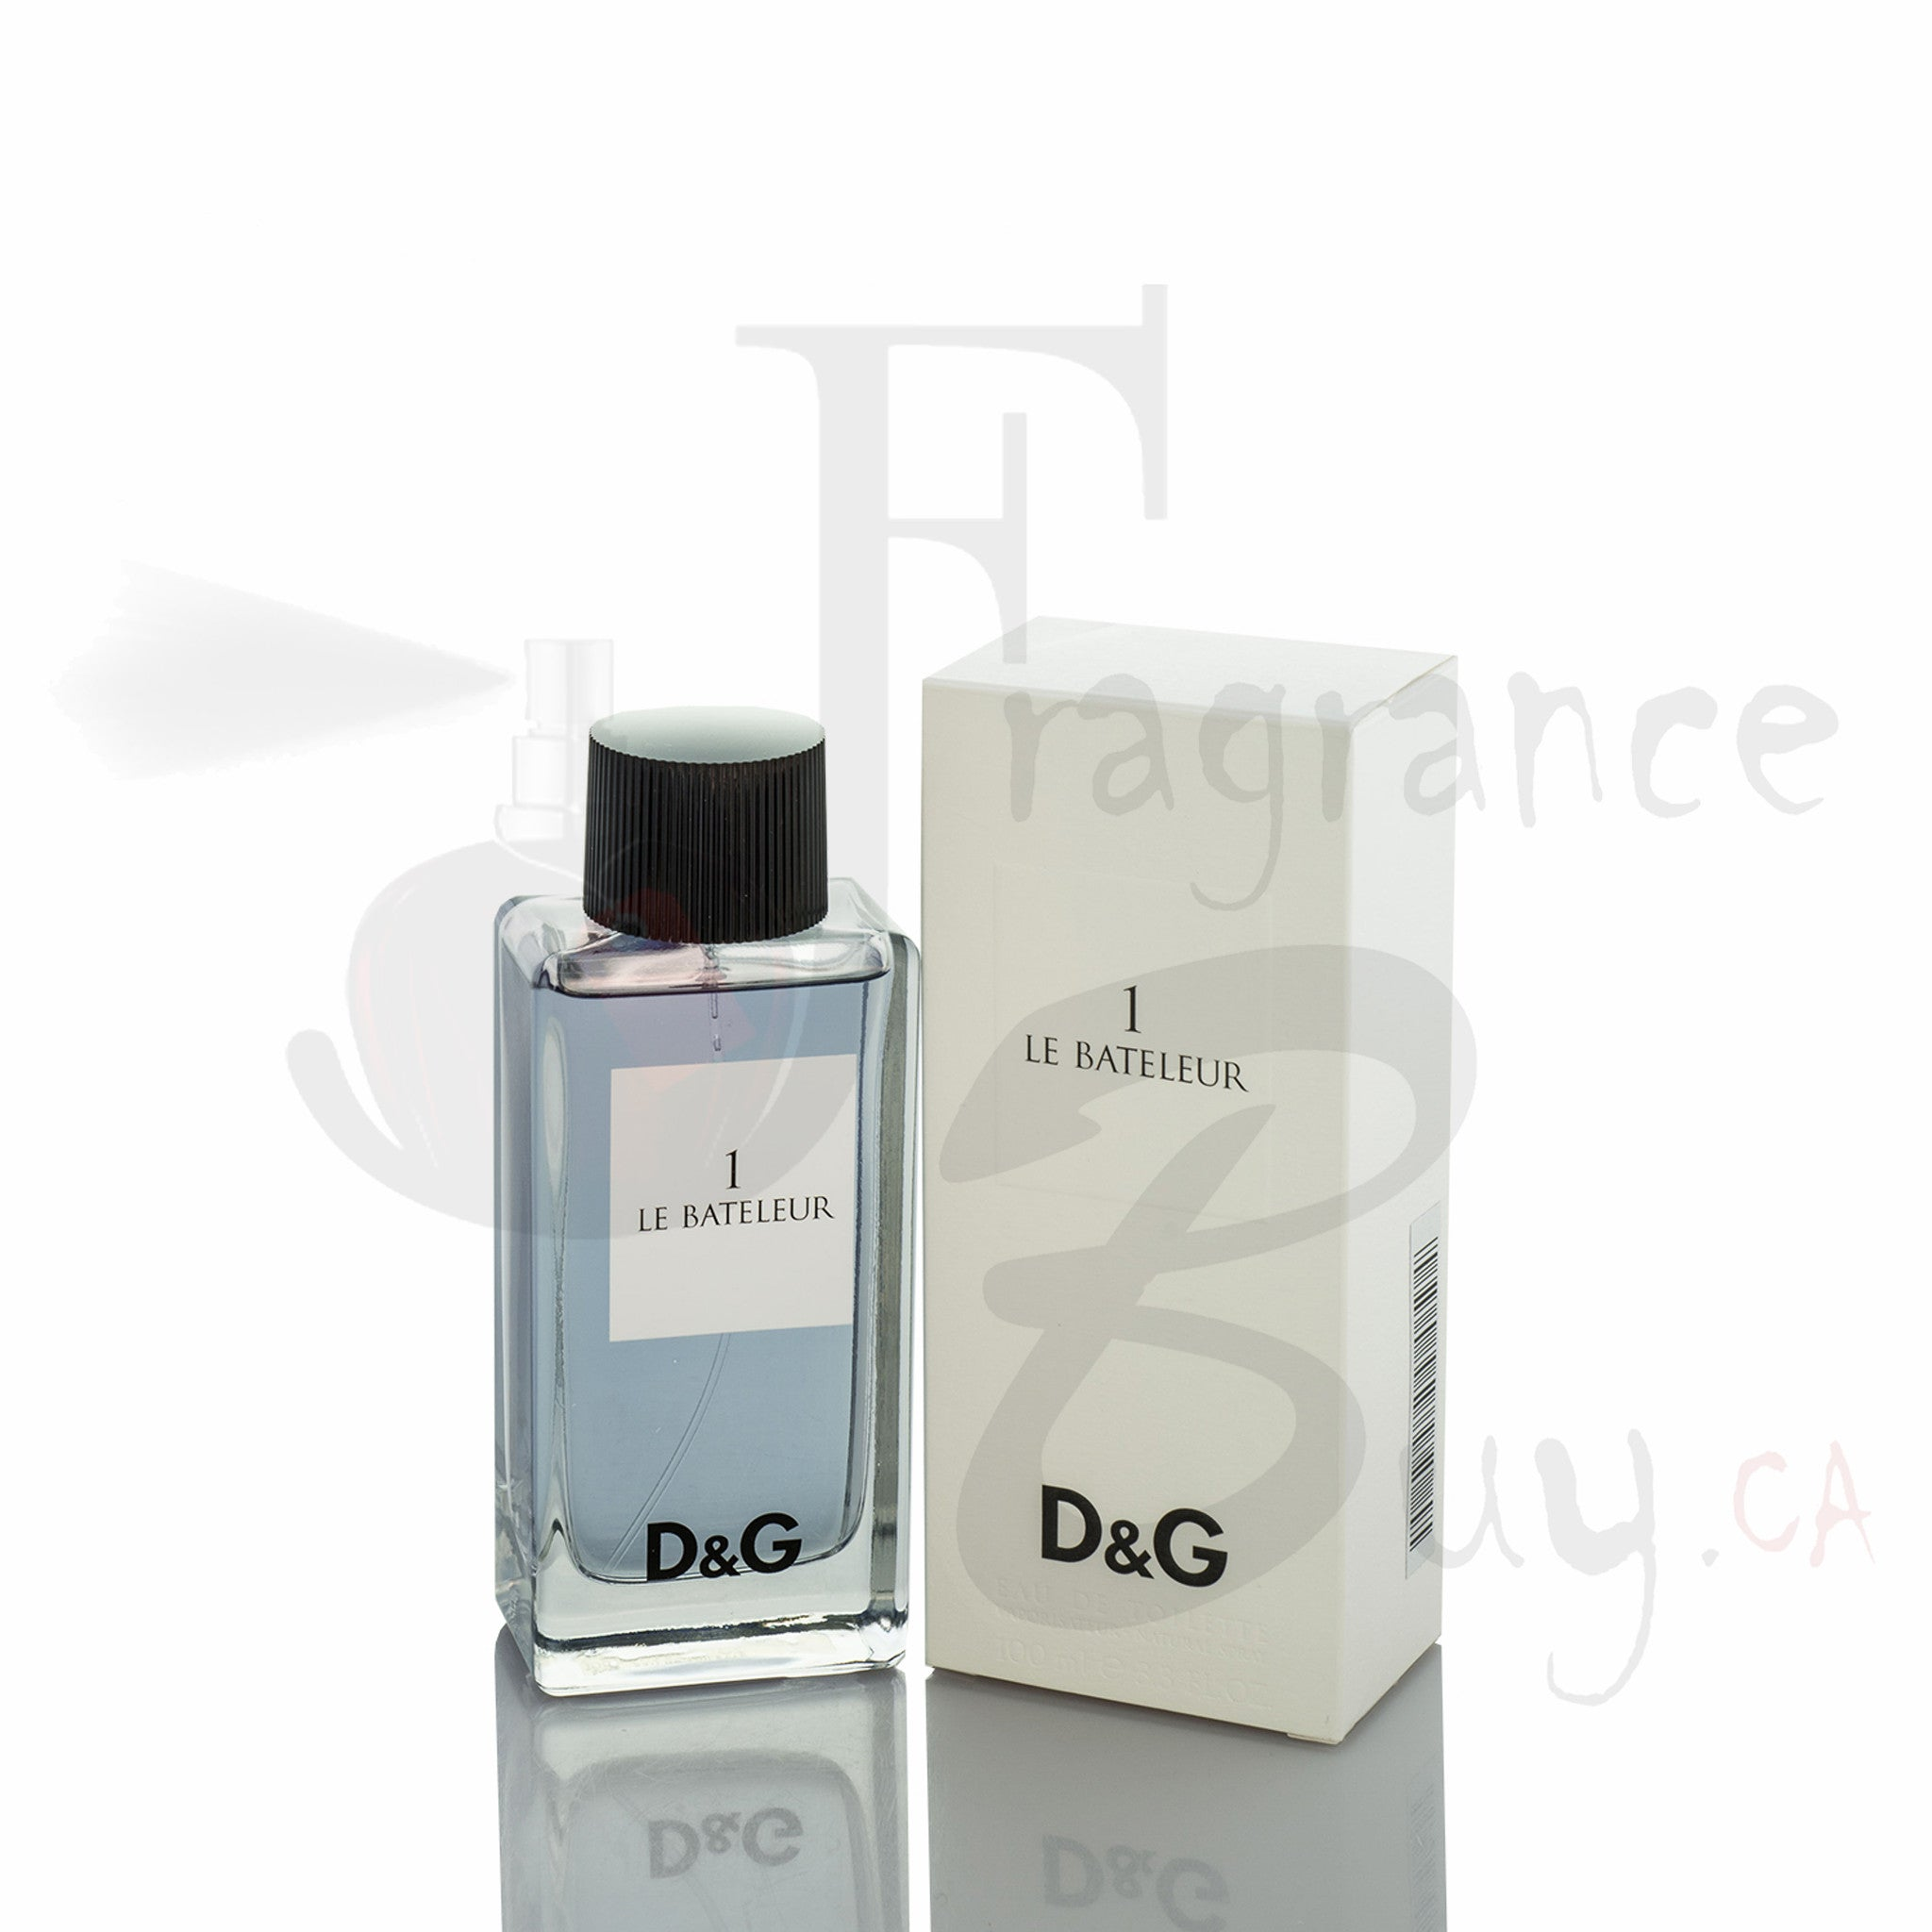 D&G Collection #1 Le Bateleur For Woman